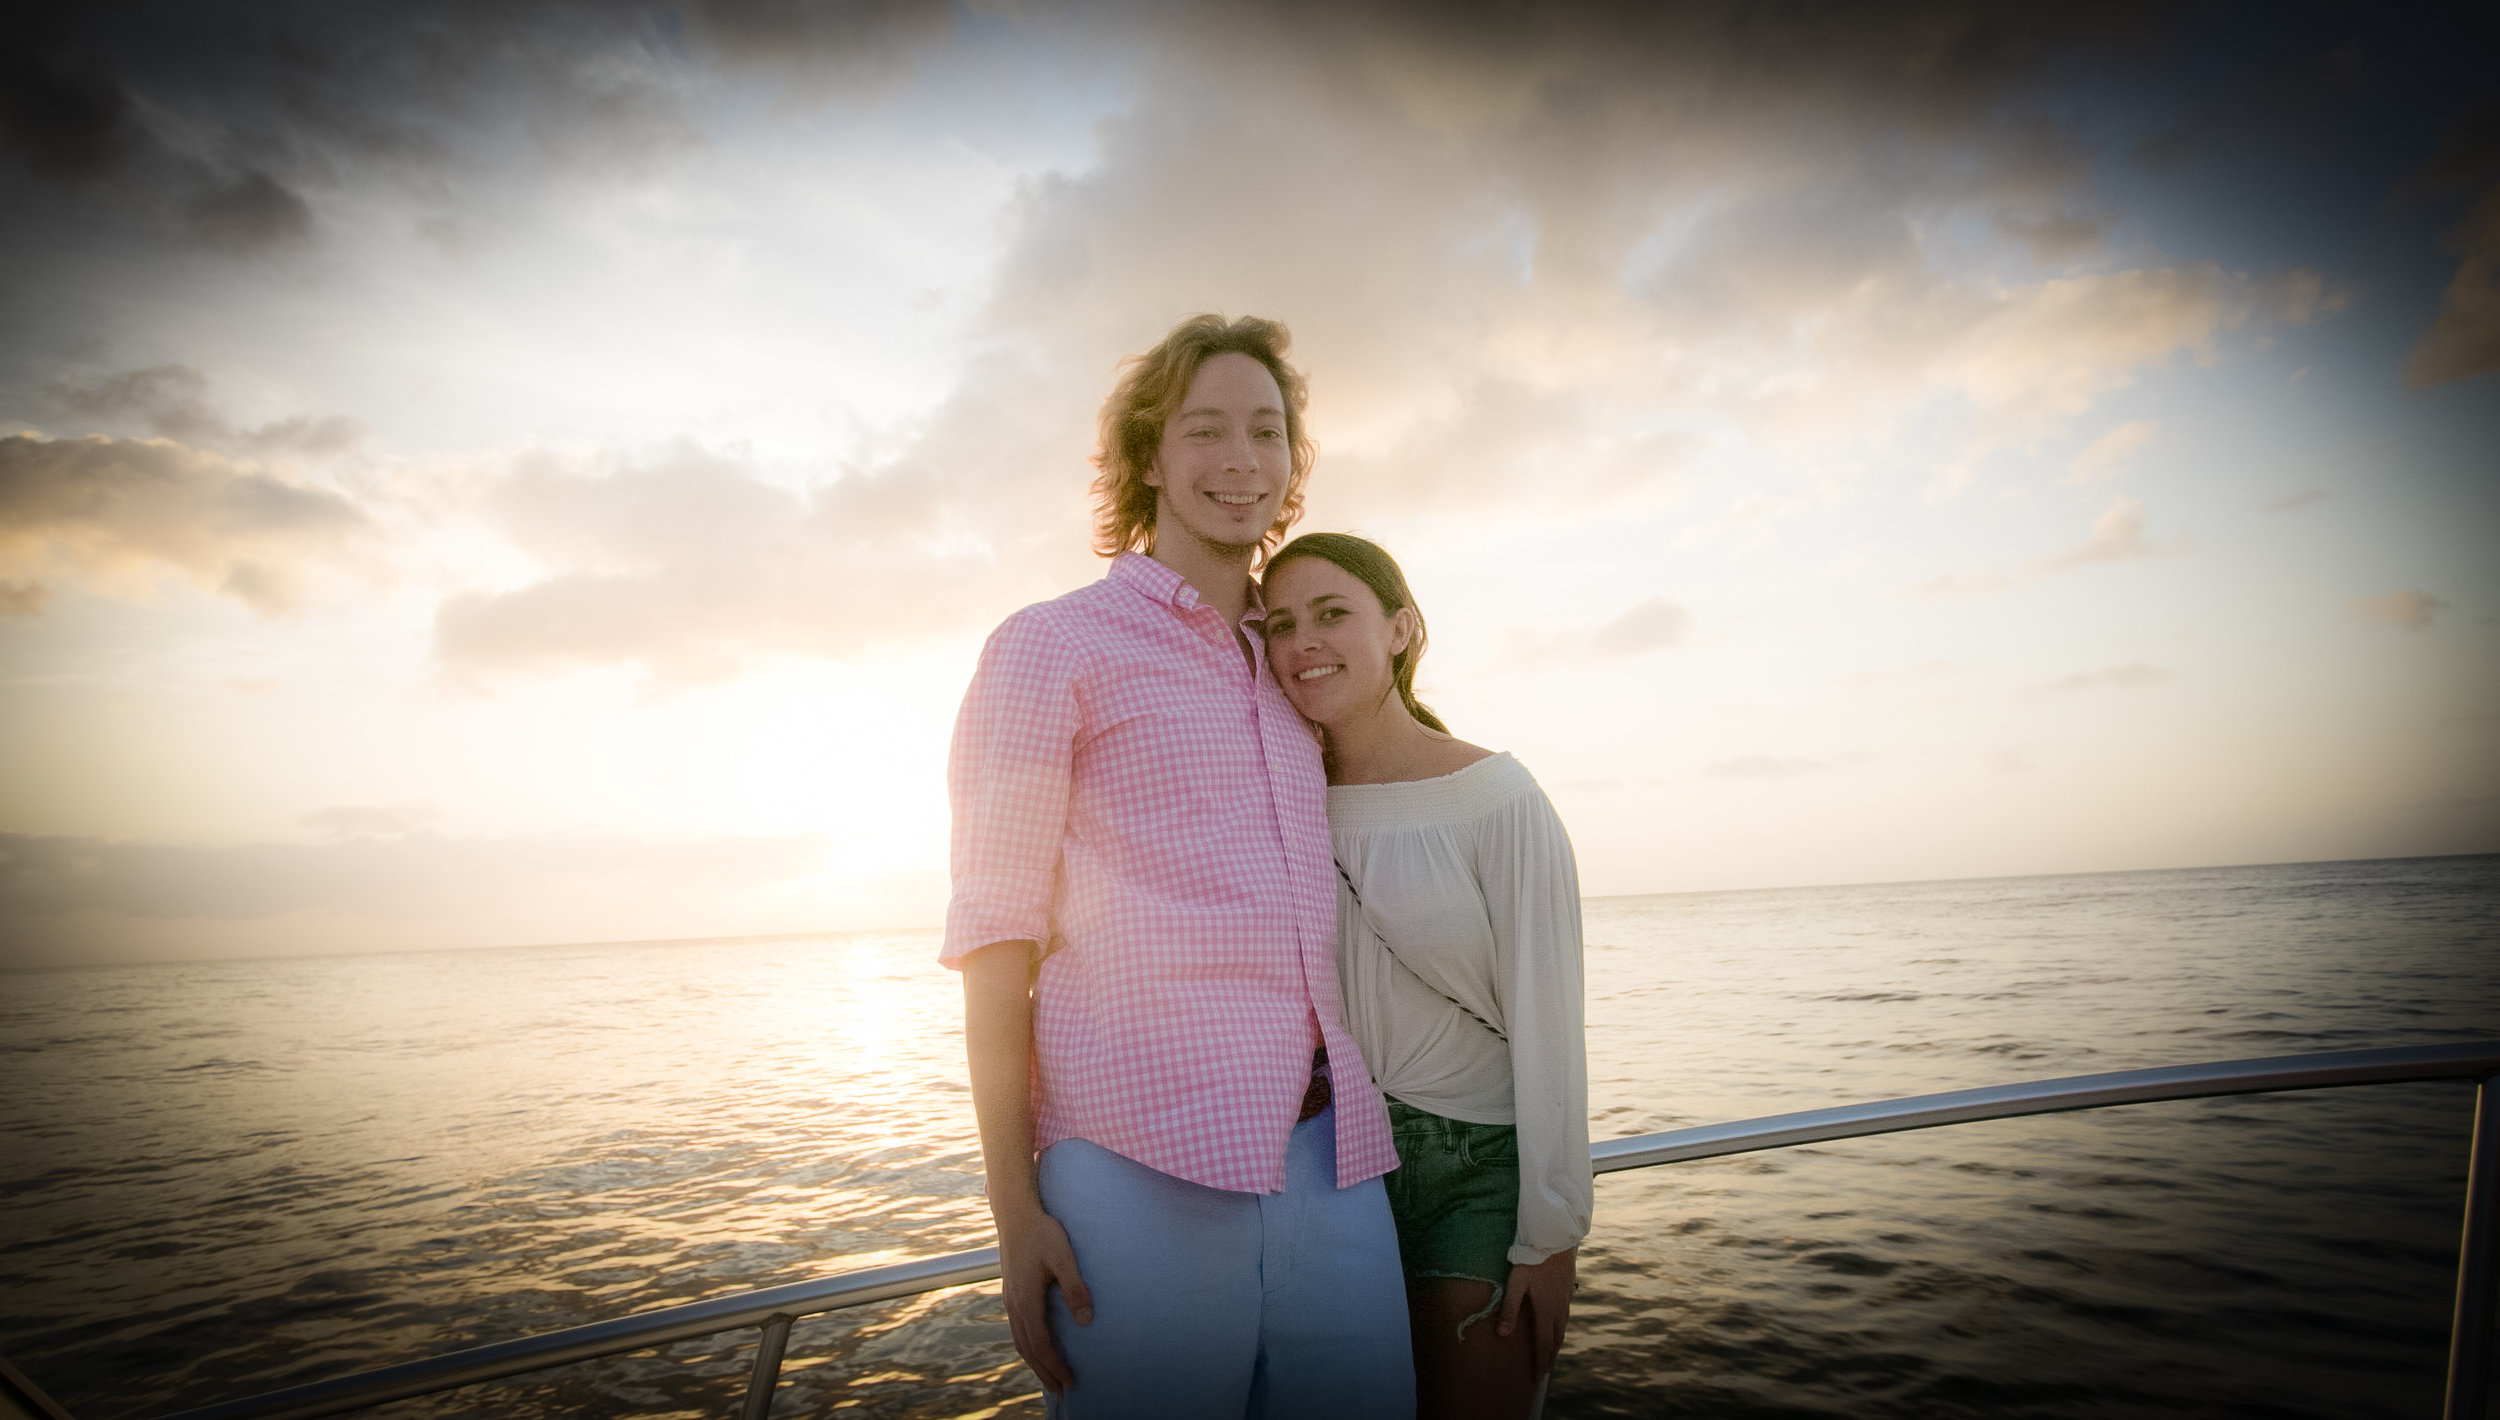 Not newly weds but enjoying vacation as well while sunset cruising and an adorable couple! Photography Courtesy of The Aisle Photography